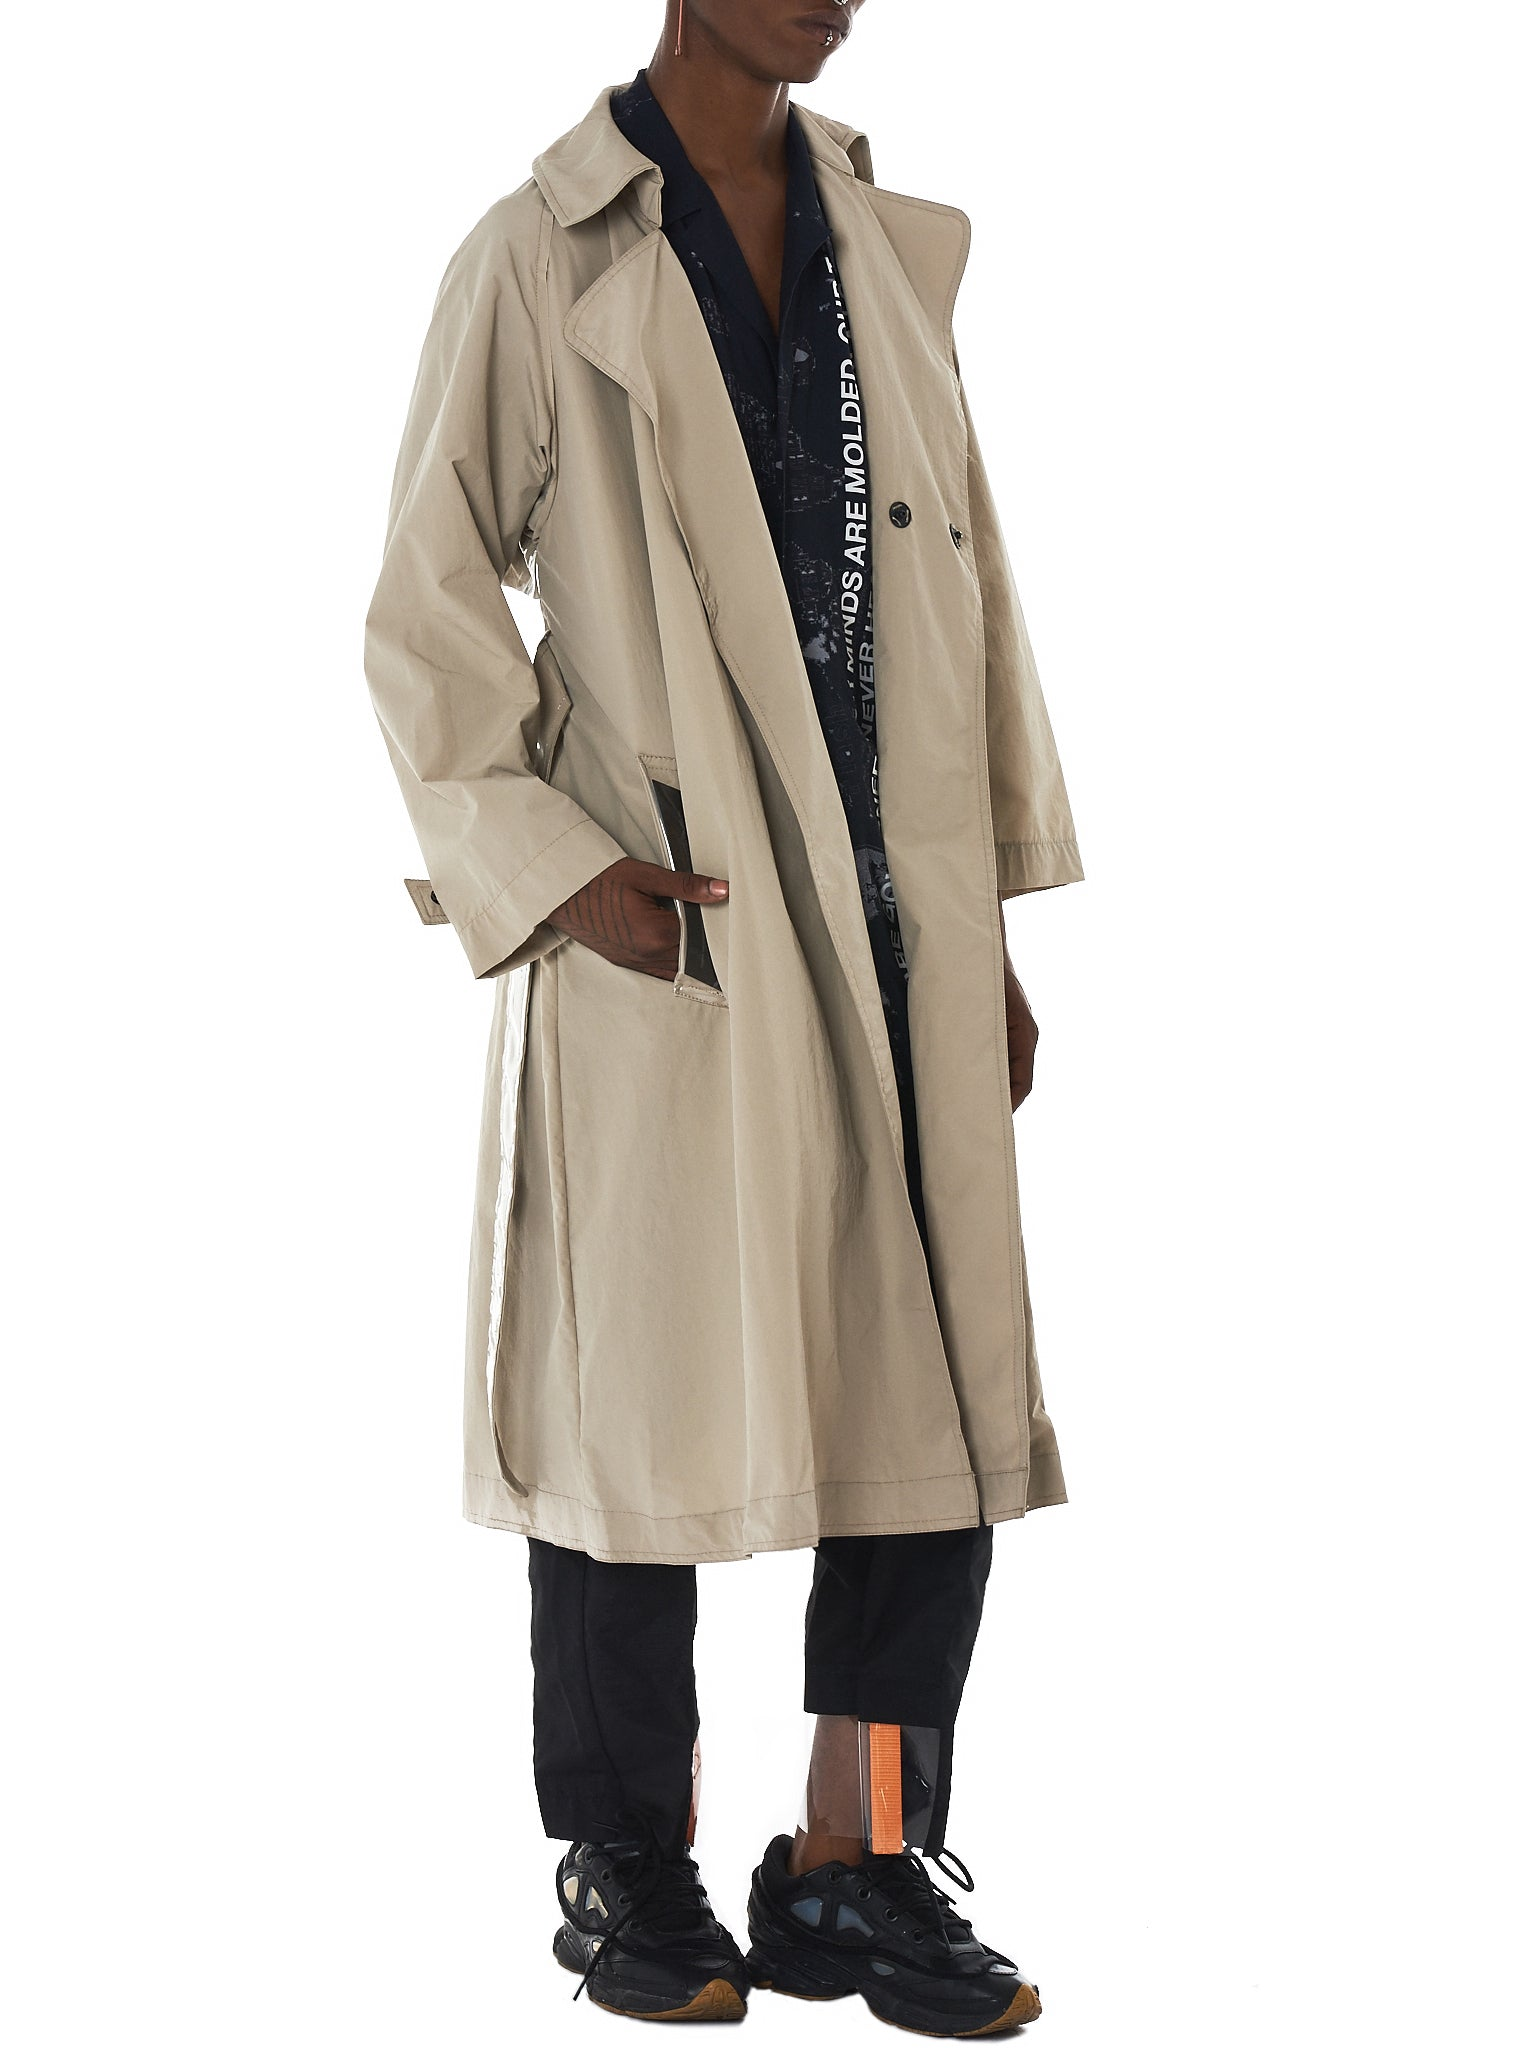 Tourne De Transmission Trench Coat - HLorenzo Style